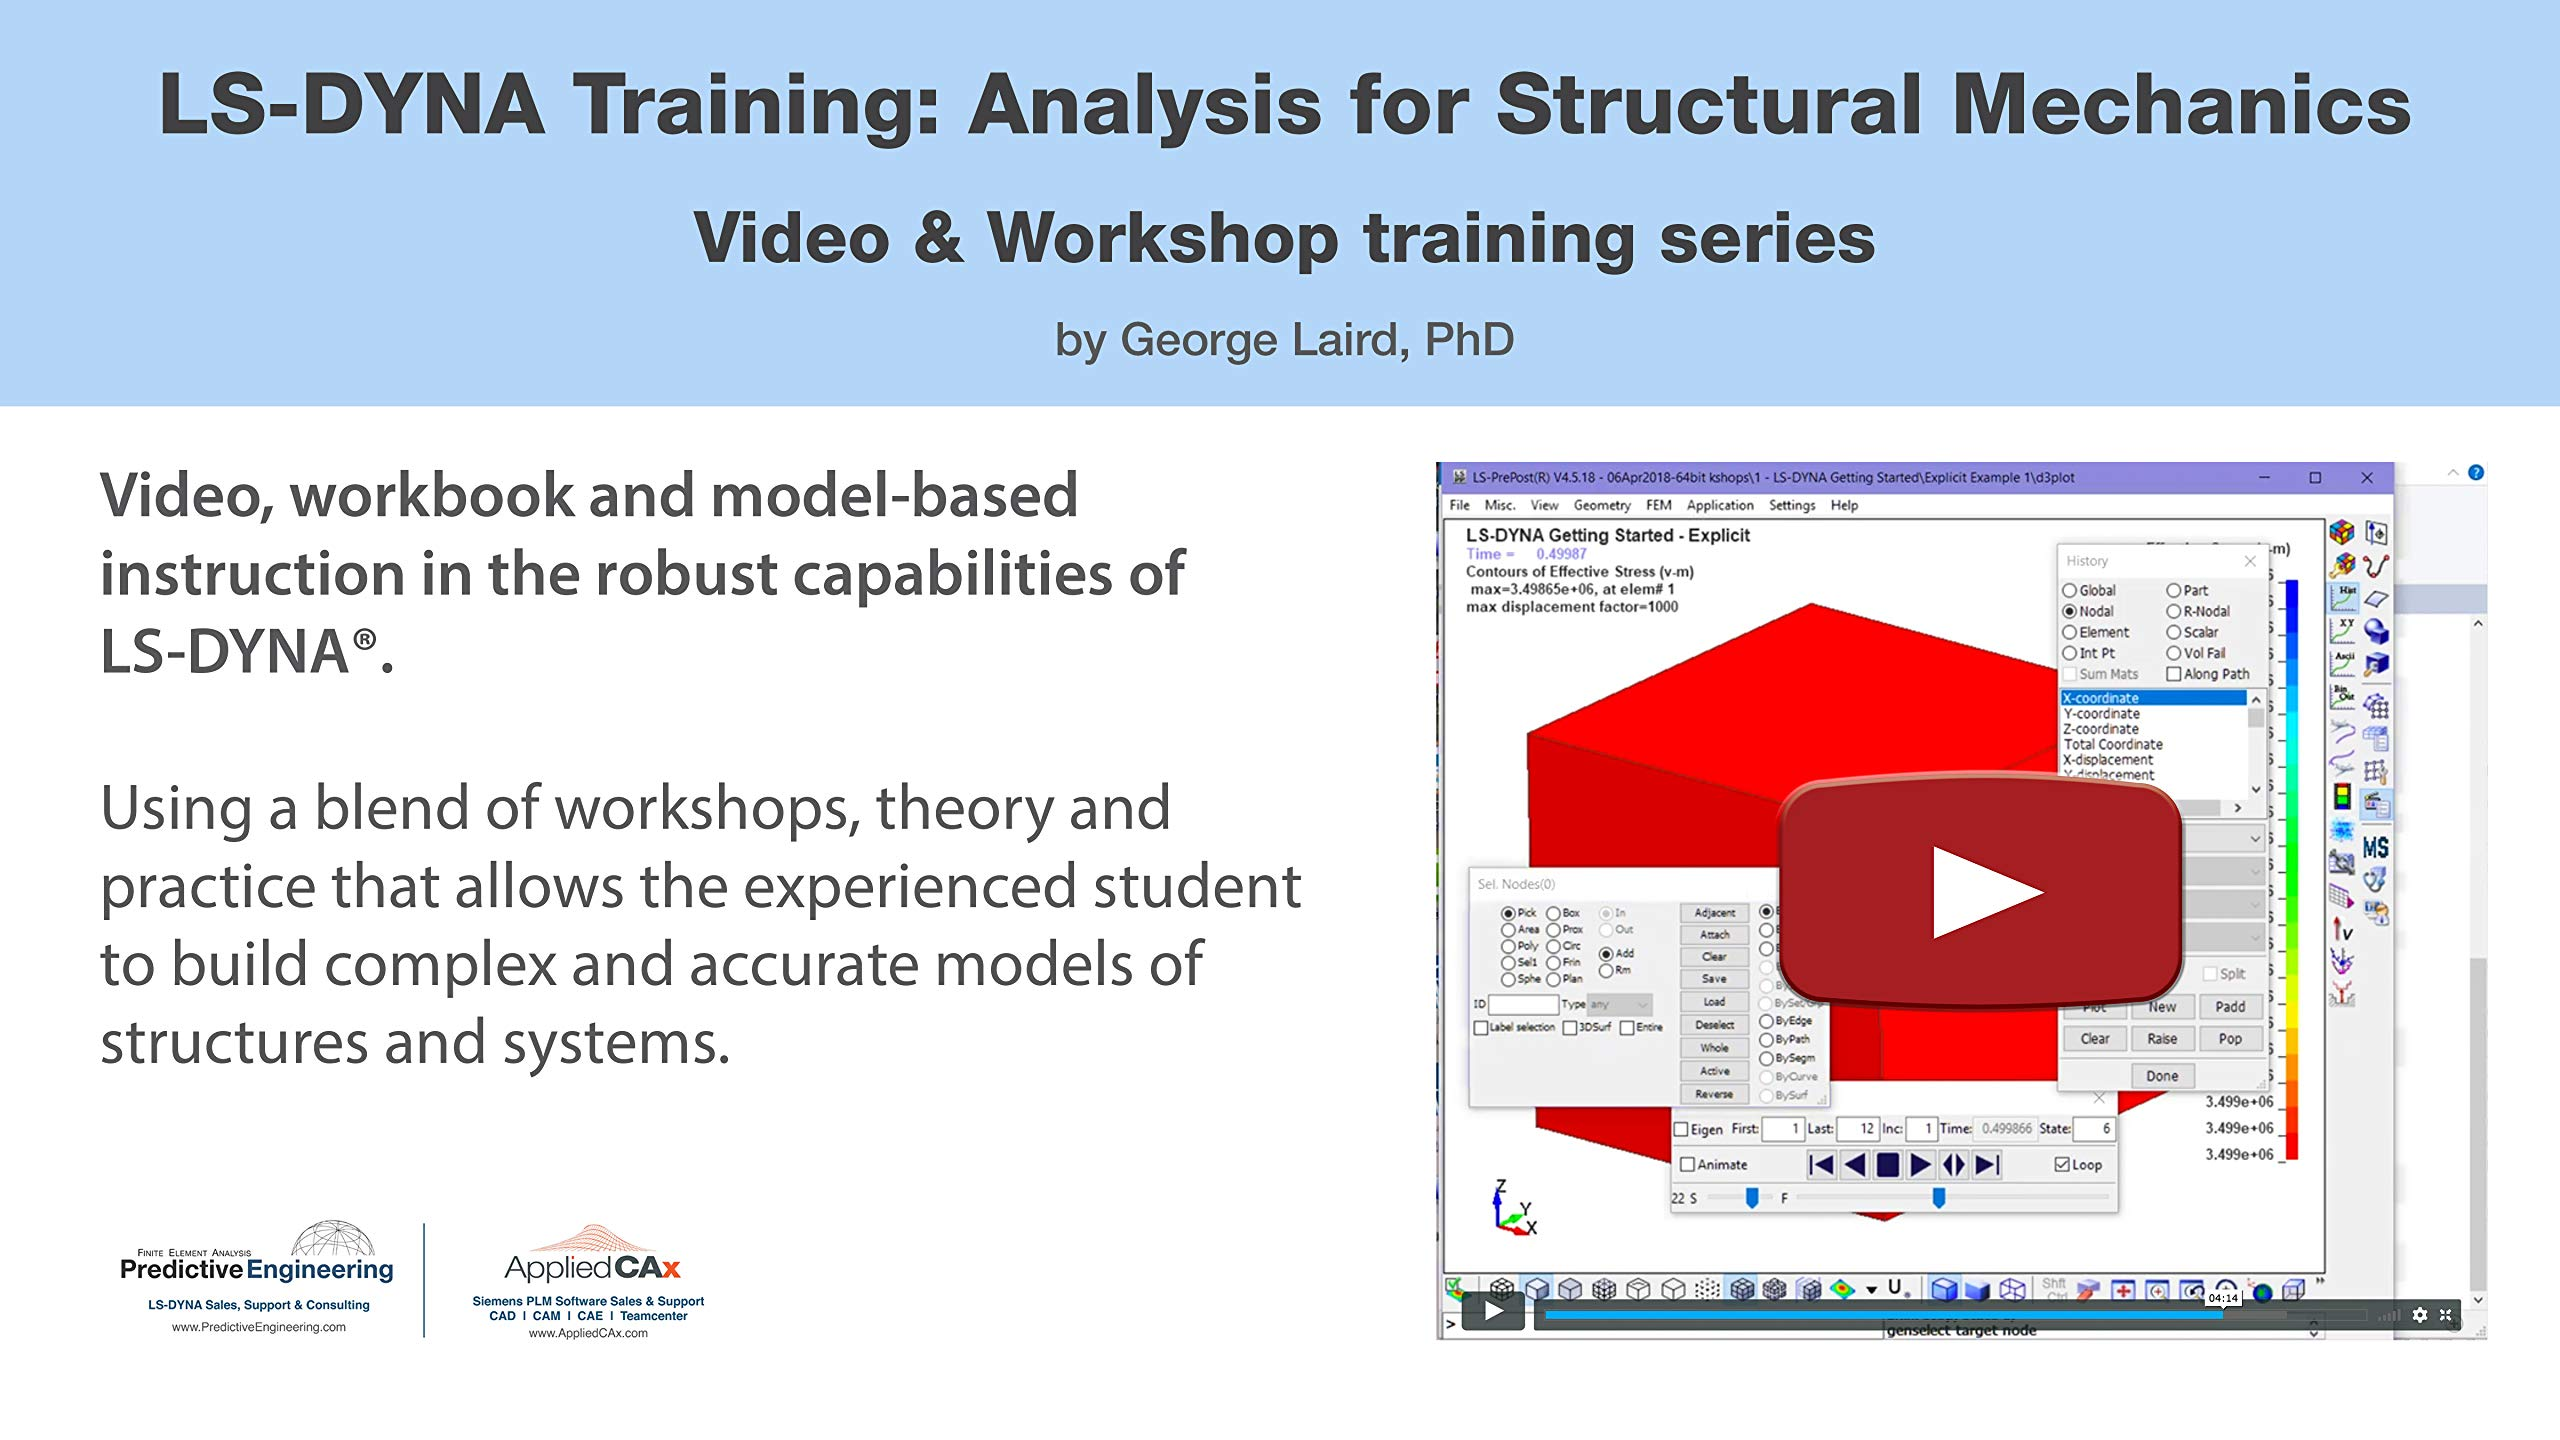 LS-DYNA Training: Analysis for Structural Mechanics - Video